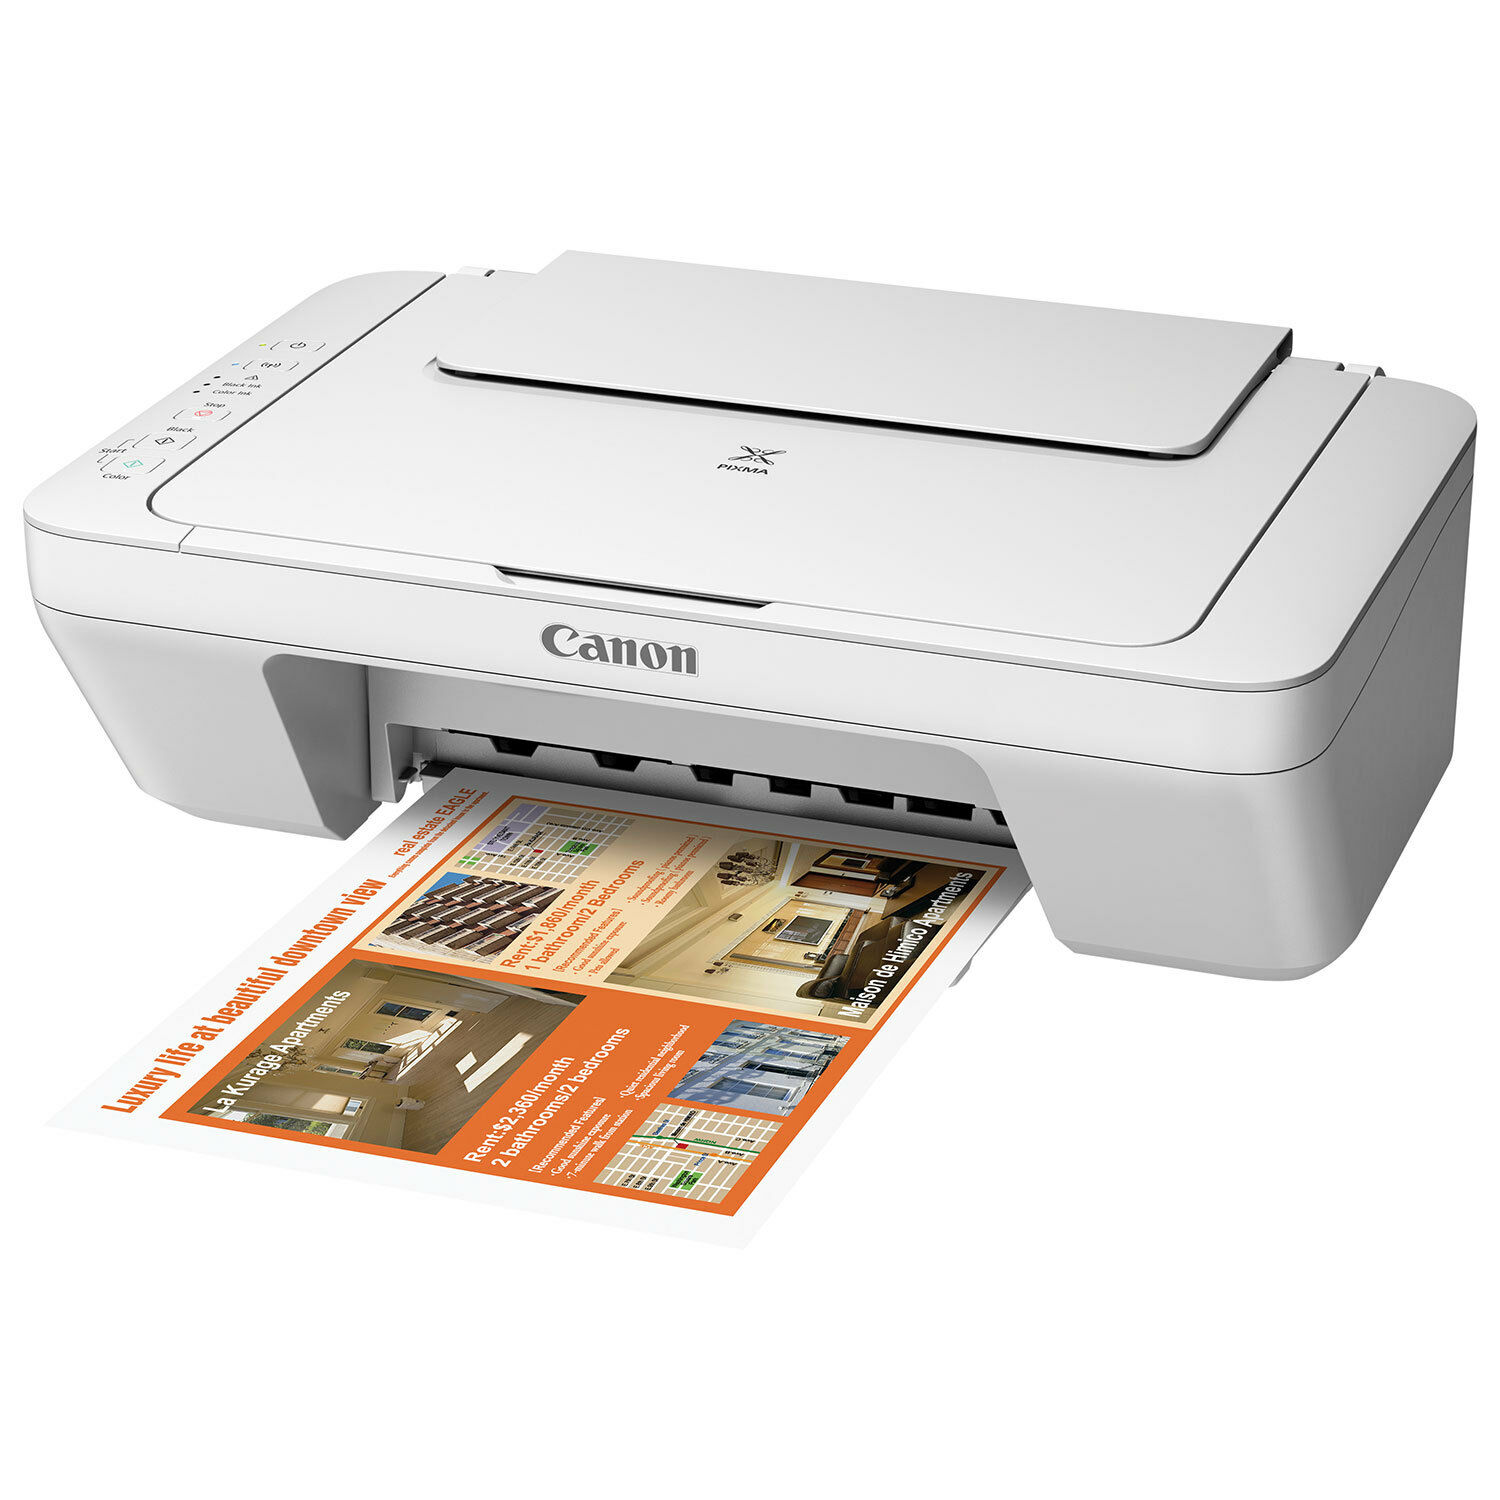 Canon Pixma MG 2920 Wireless Inkjet All-in-One No Ink Cartridge Included